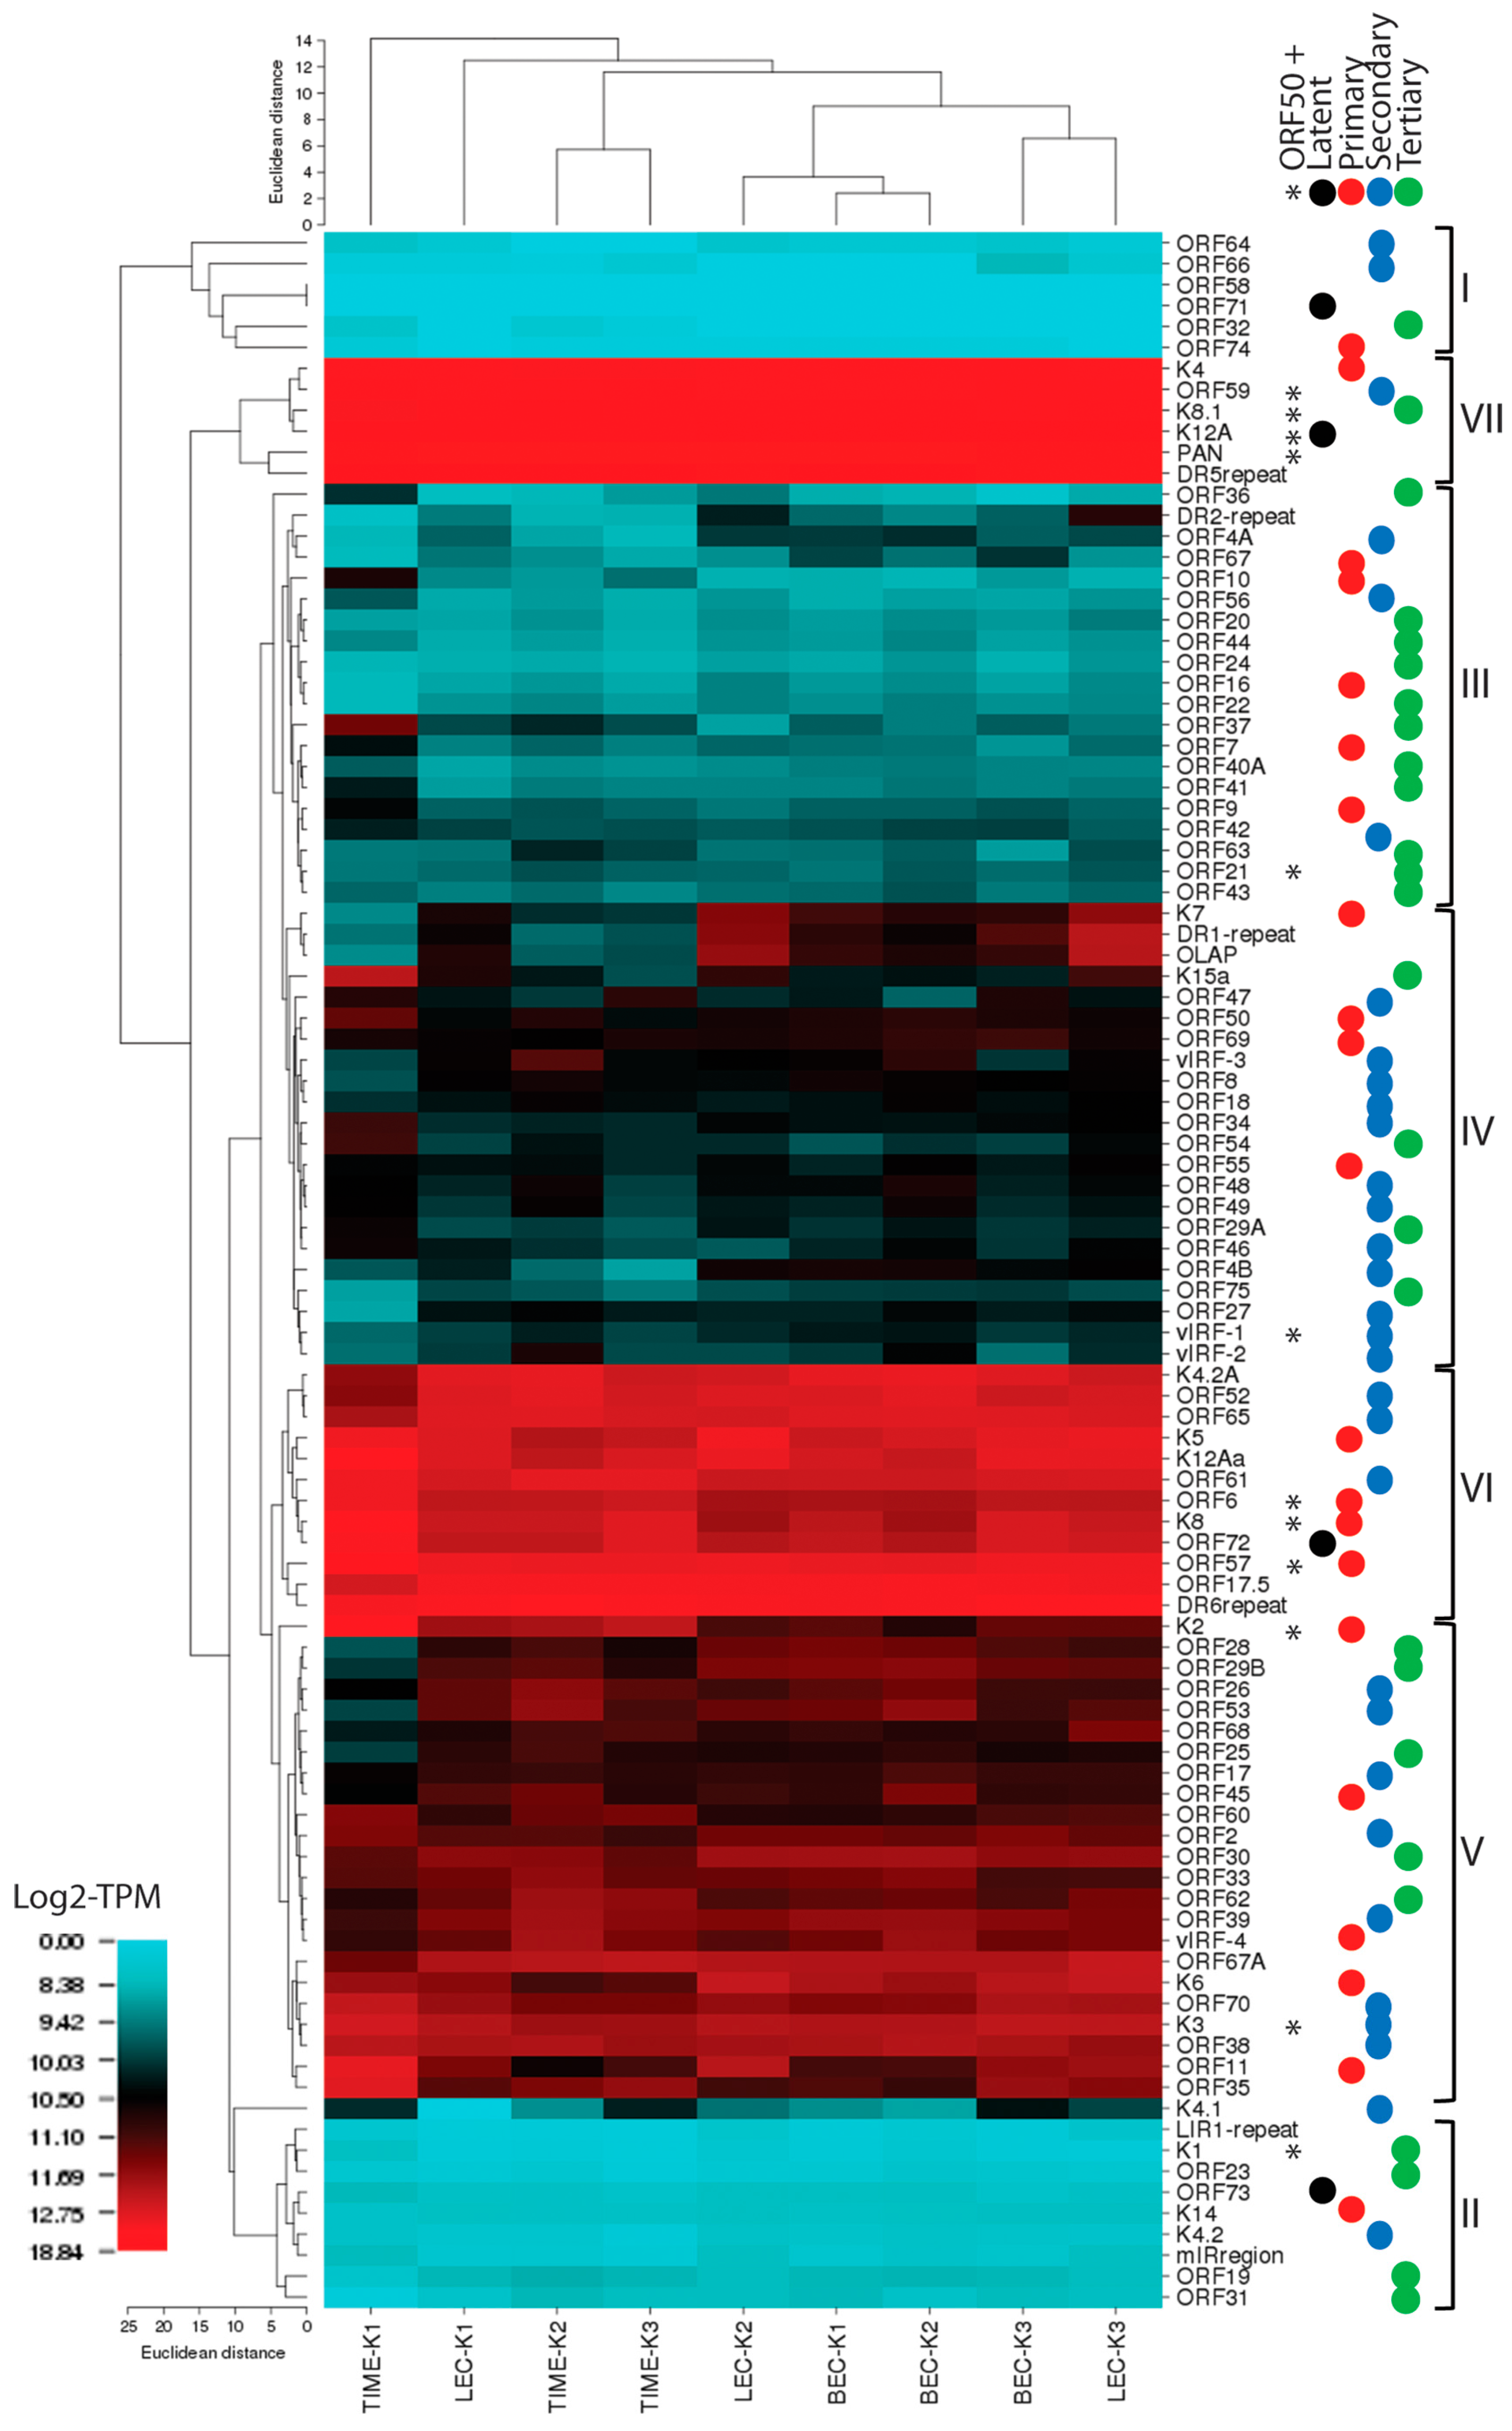 an analysis of the transcription in prokaryote and an analysis of the blood patterns Hemovision: an automated and virtual approach to bloodstain pattern analysis joris p(1), develter w(2), jenar e(3), suetens p(4),.